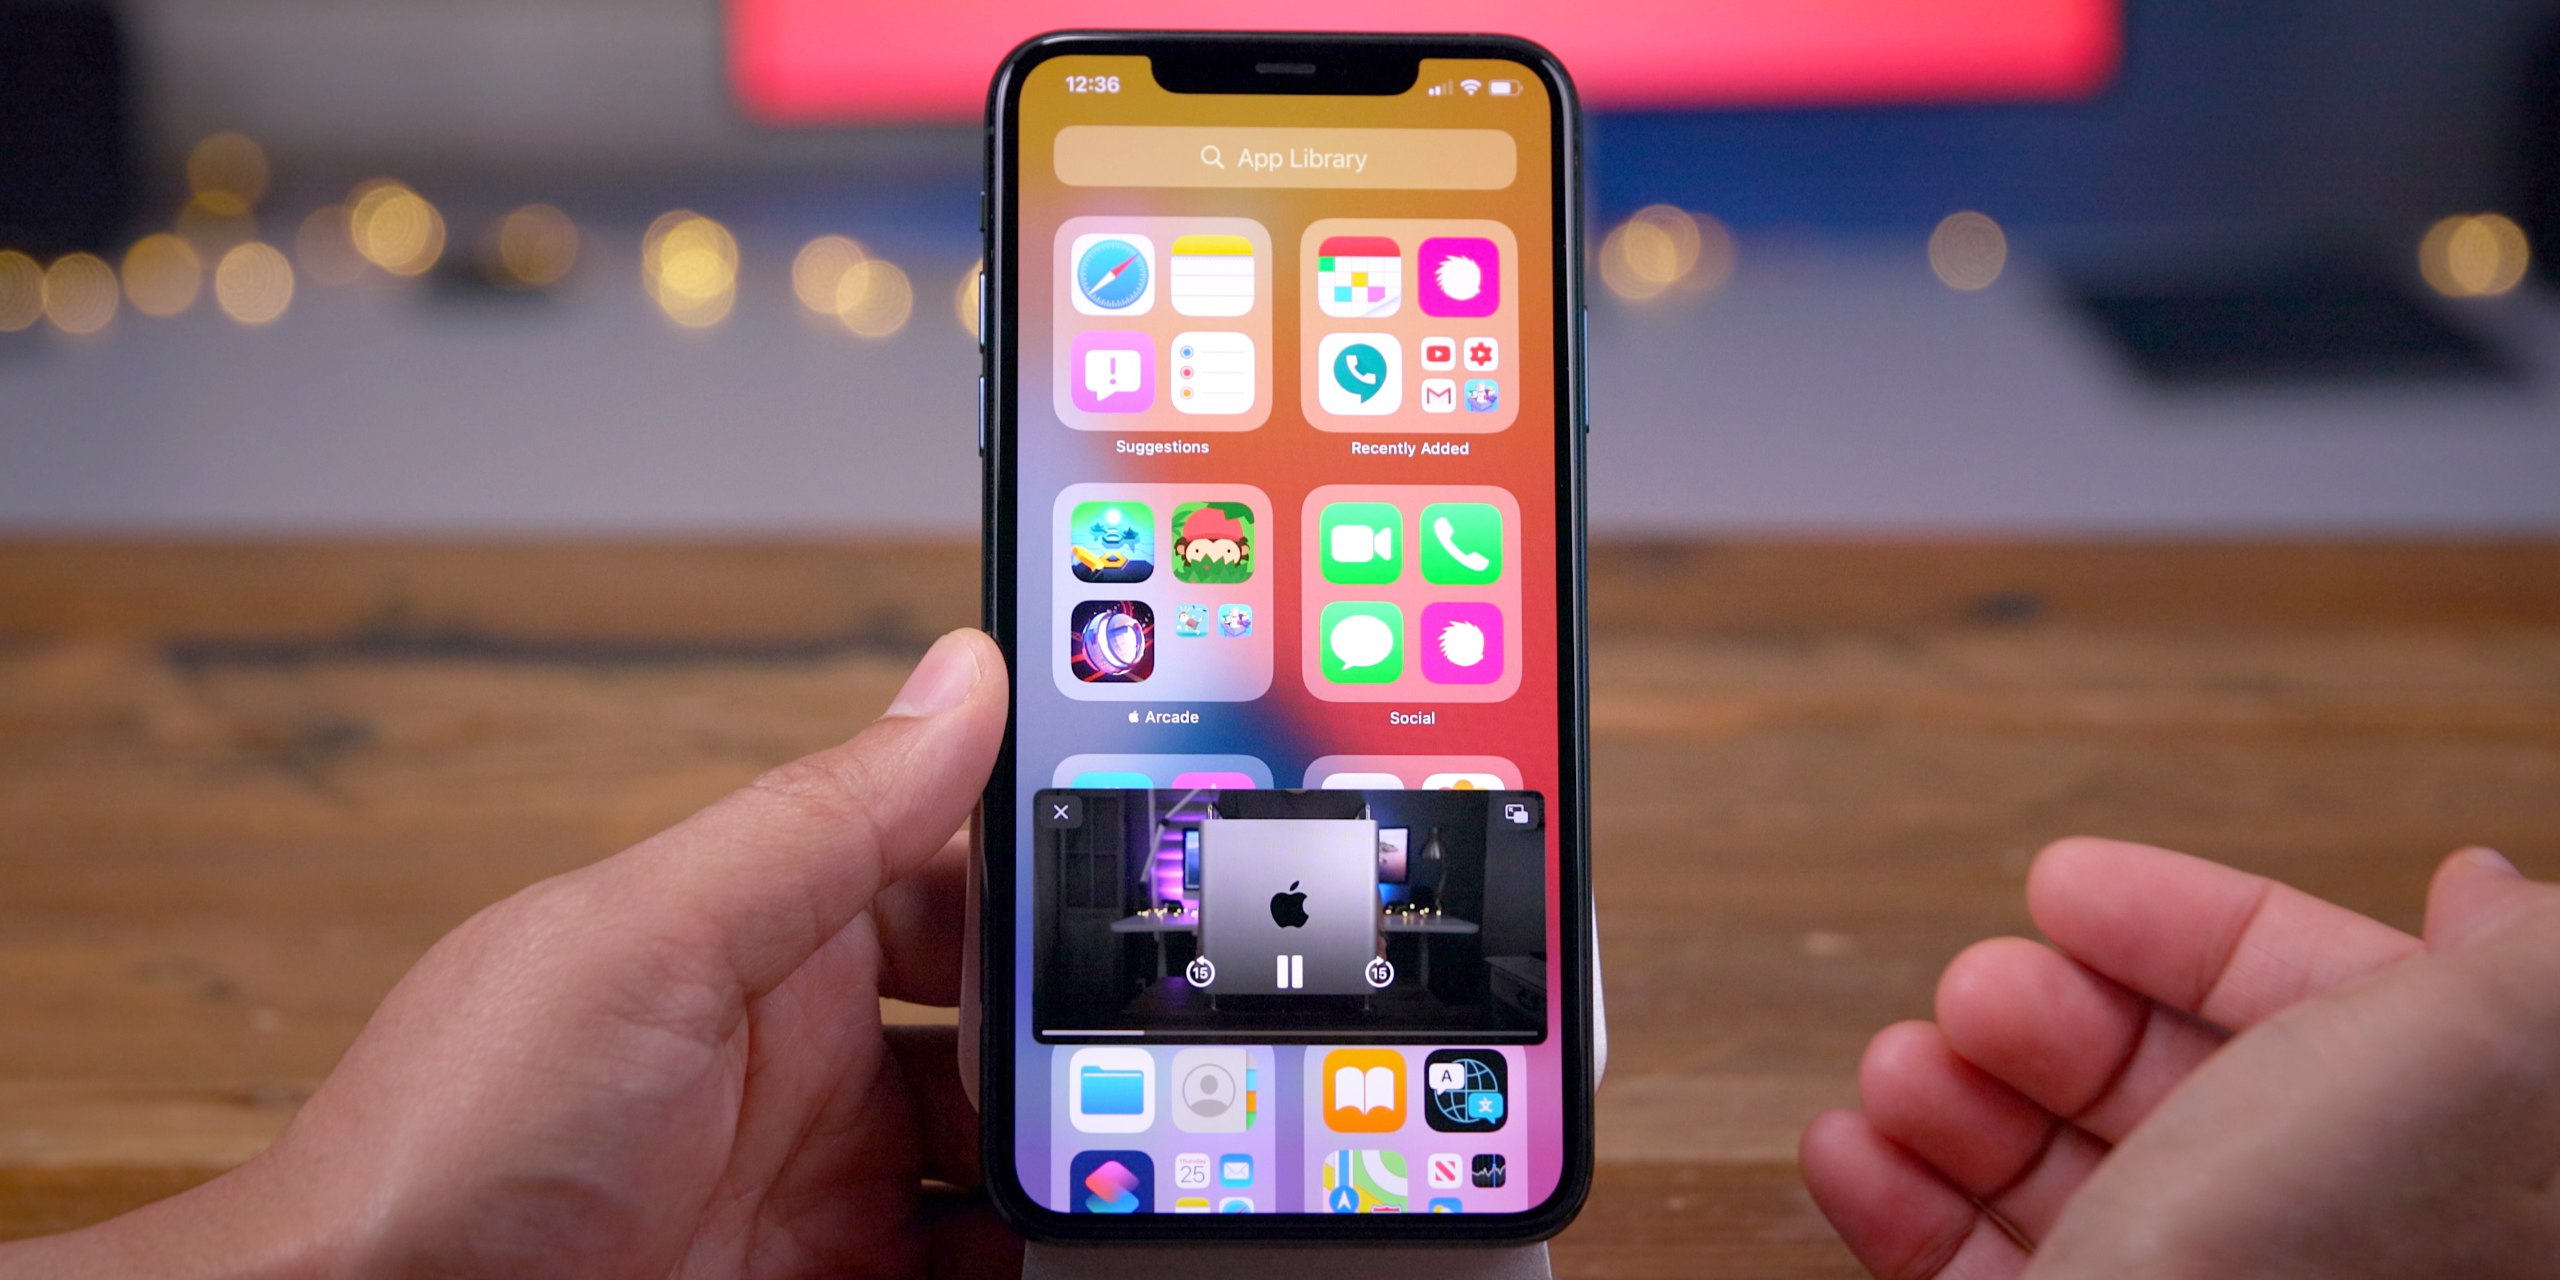 250+ iOS 14 beta features and changes [Video] - 9to5Mac